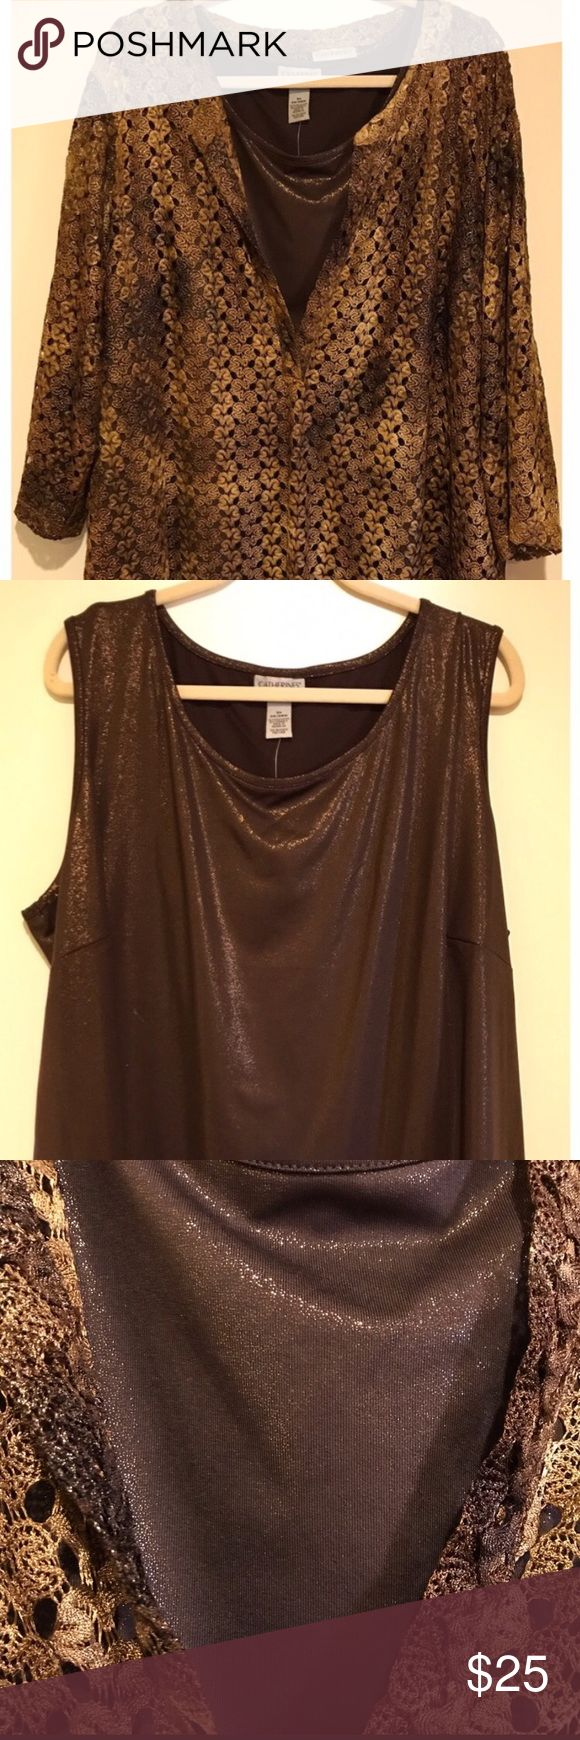 Catherine's Gold/Brown Metallic Blouse & Tank Set Gold/Brown metallic blouse and sparkly tank to go underneath. Like new! Smoke free home. Catherines Tops